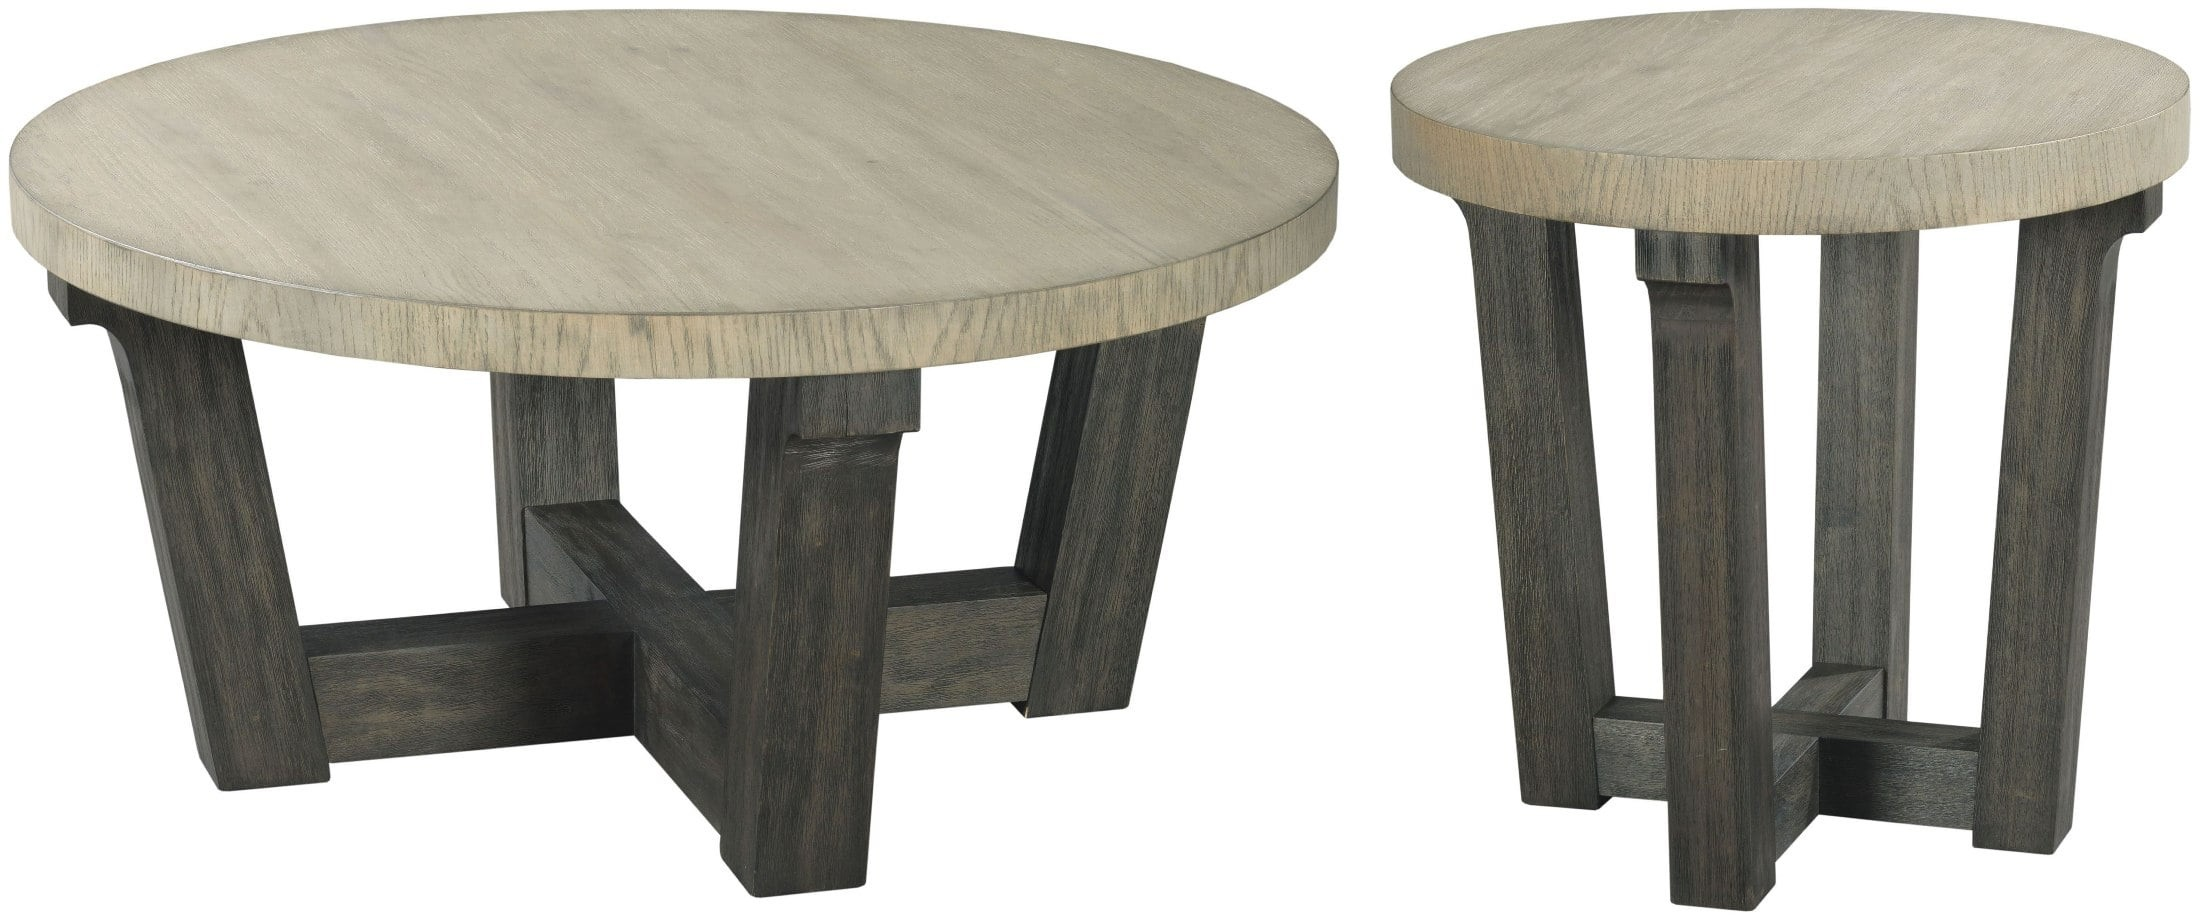 hammary the beckham dark sable base round accent table silo set wood media gallery cherry dining room pottery barn lorraine corner desk autumn tablecloth sofa tray ikea long